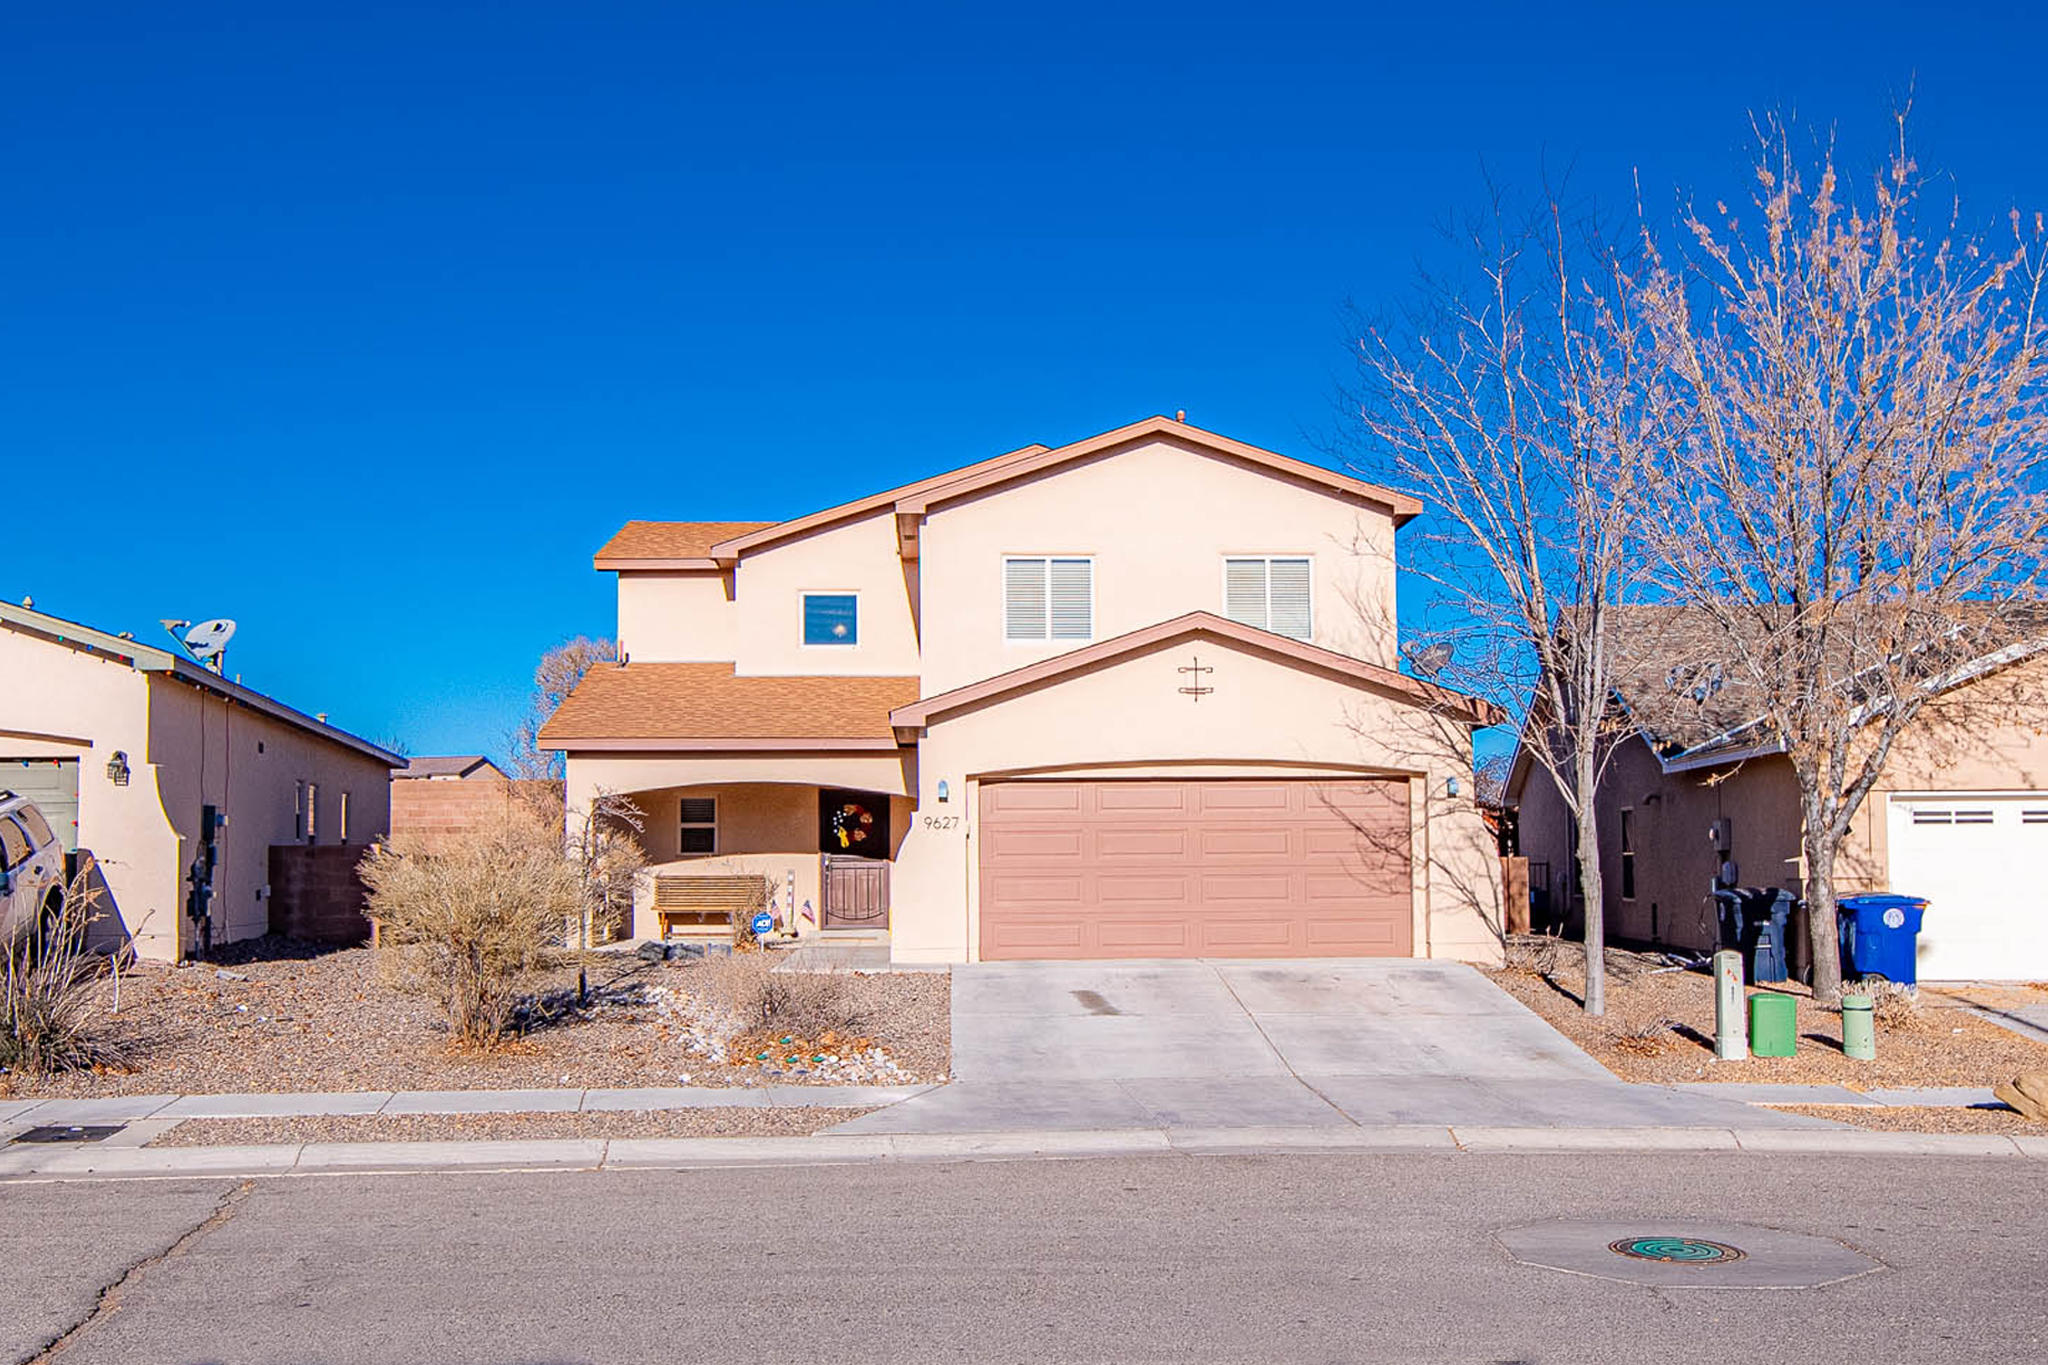 Great Home on Albuquerque's westside this home is close and convenient to everything you need. This home shows pride of ownership. New carpet just installed